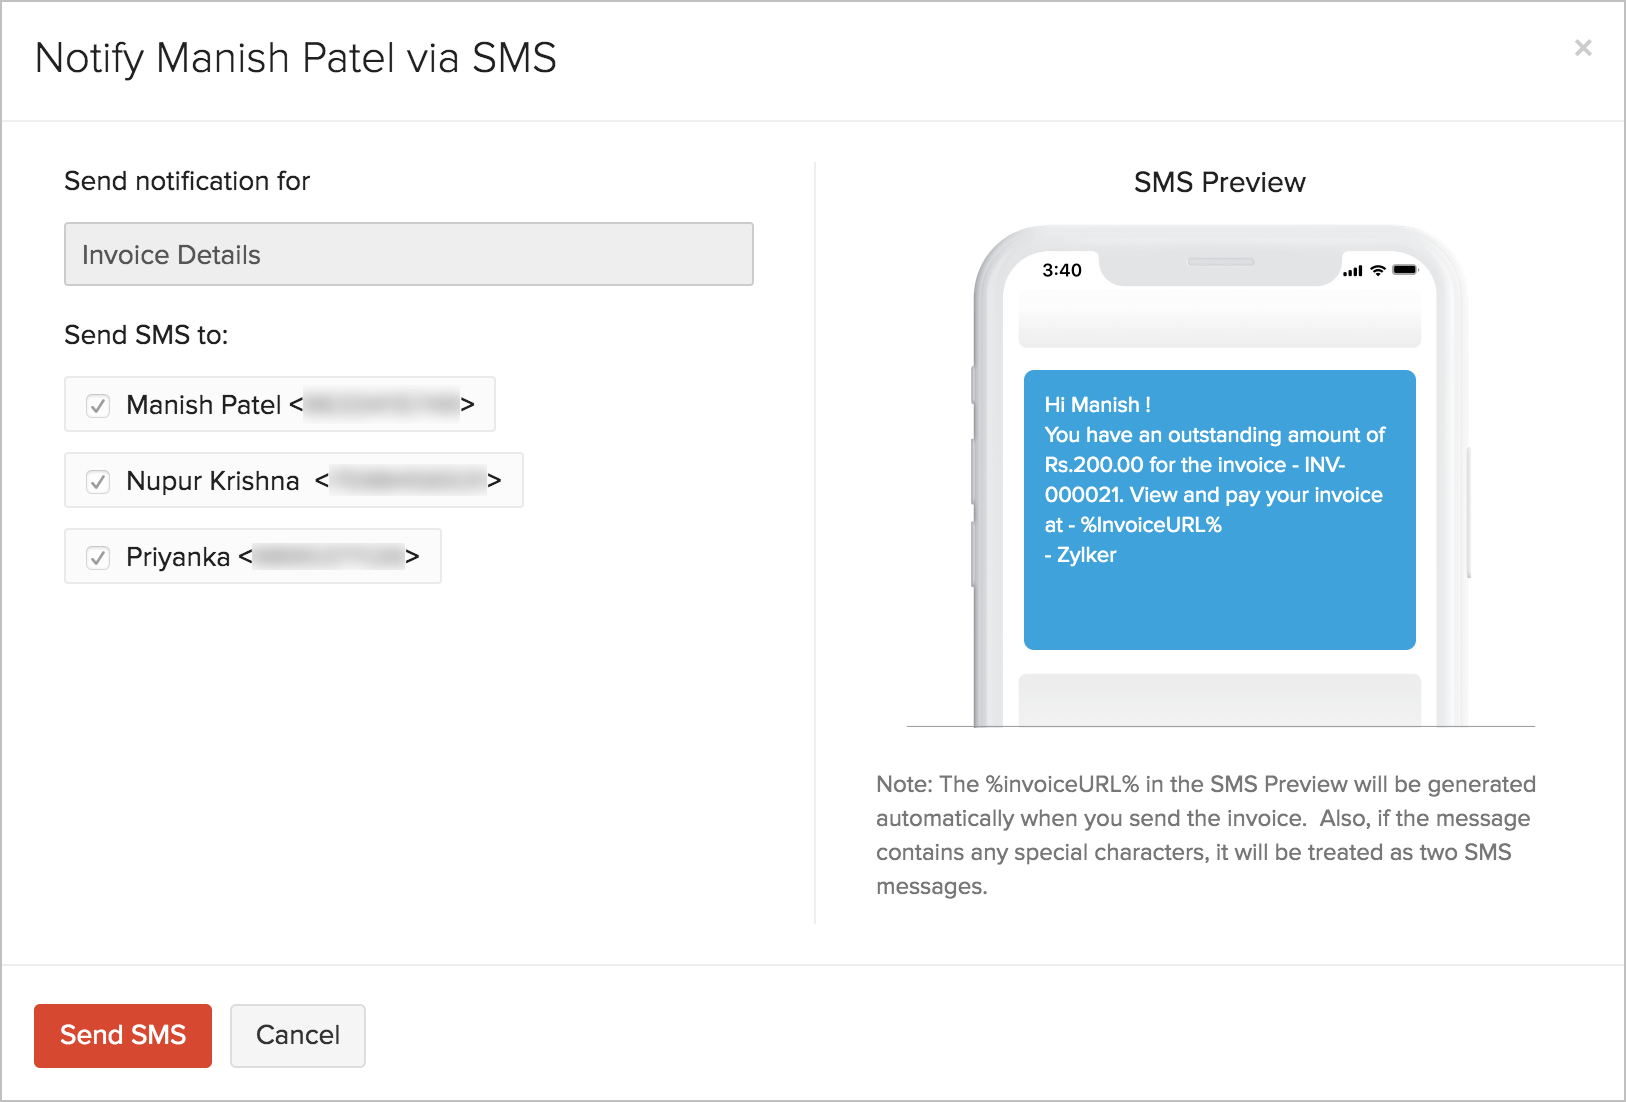 SMS message preview